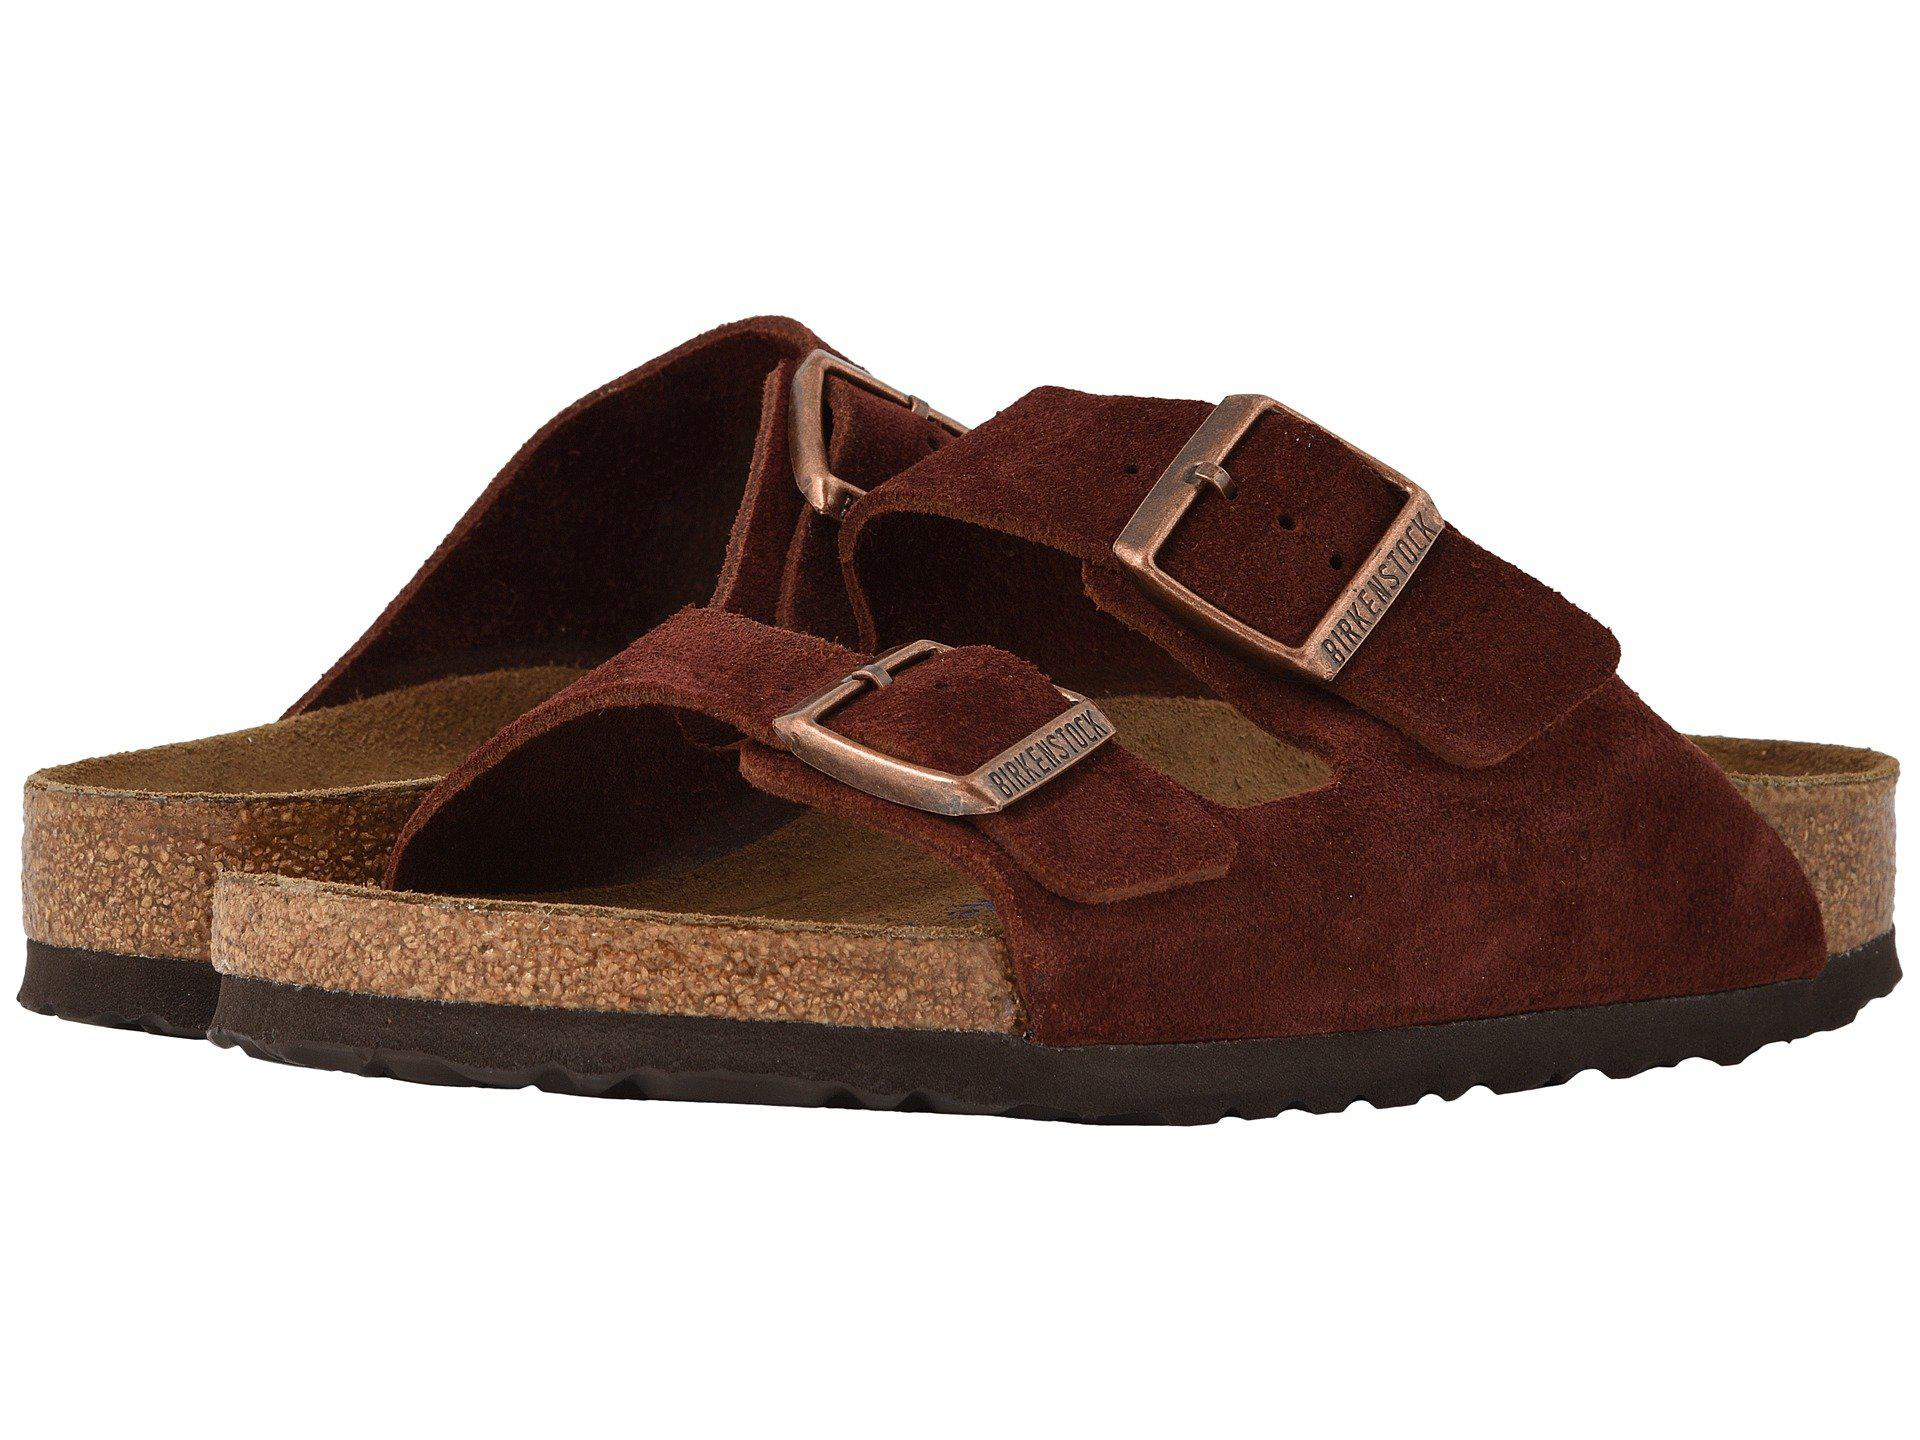 4080a85a Birkenstock Arizona Soft Footbed in Brown - Lyst